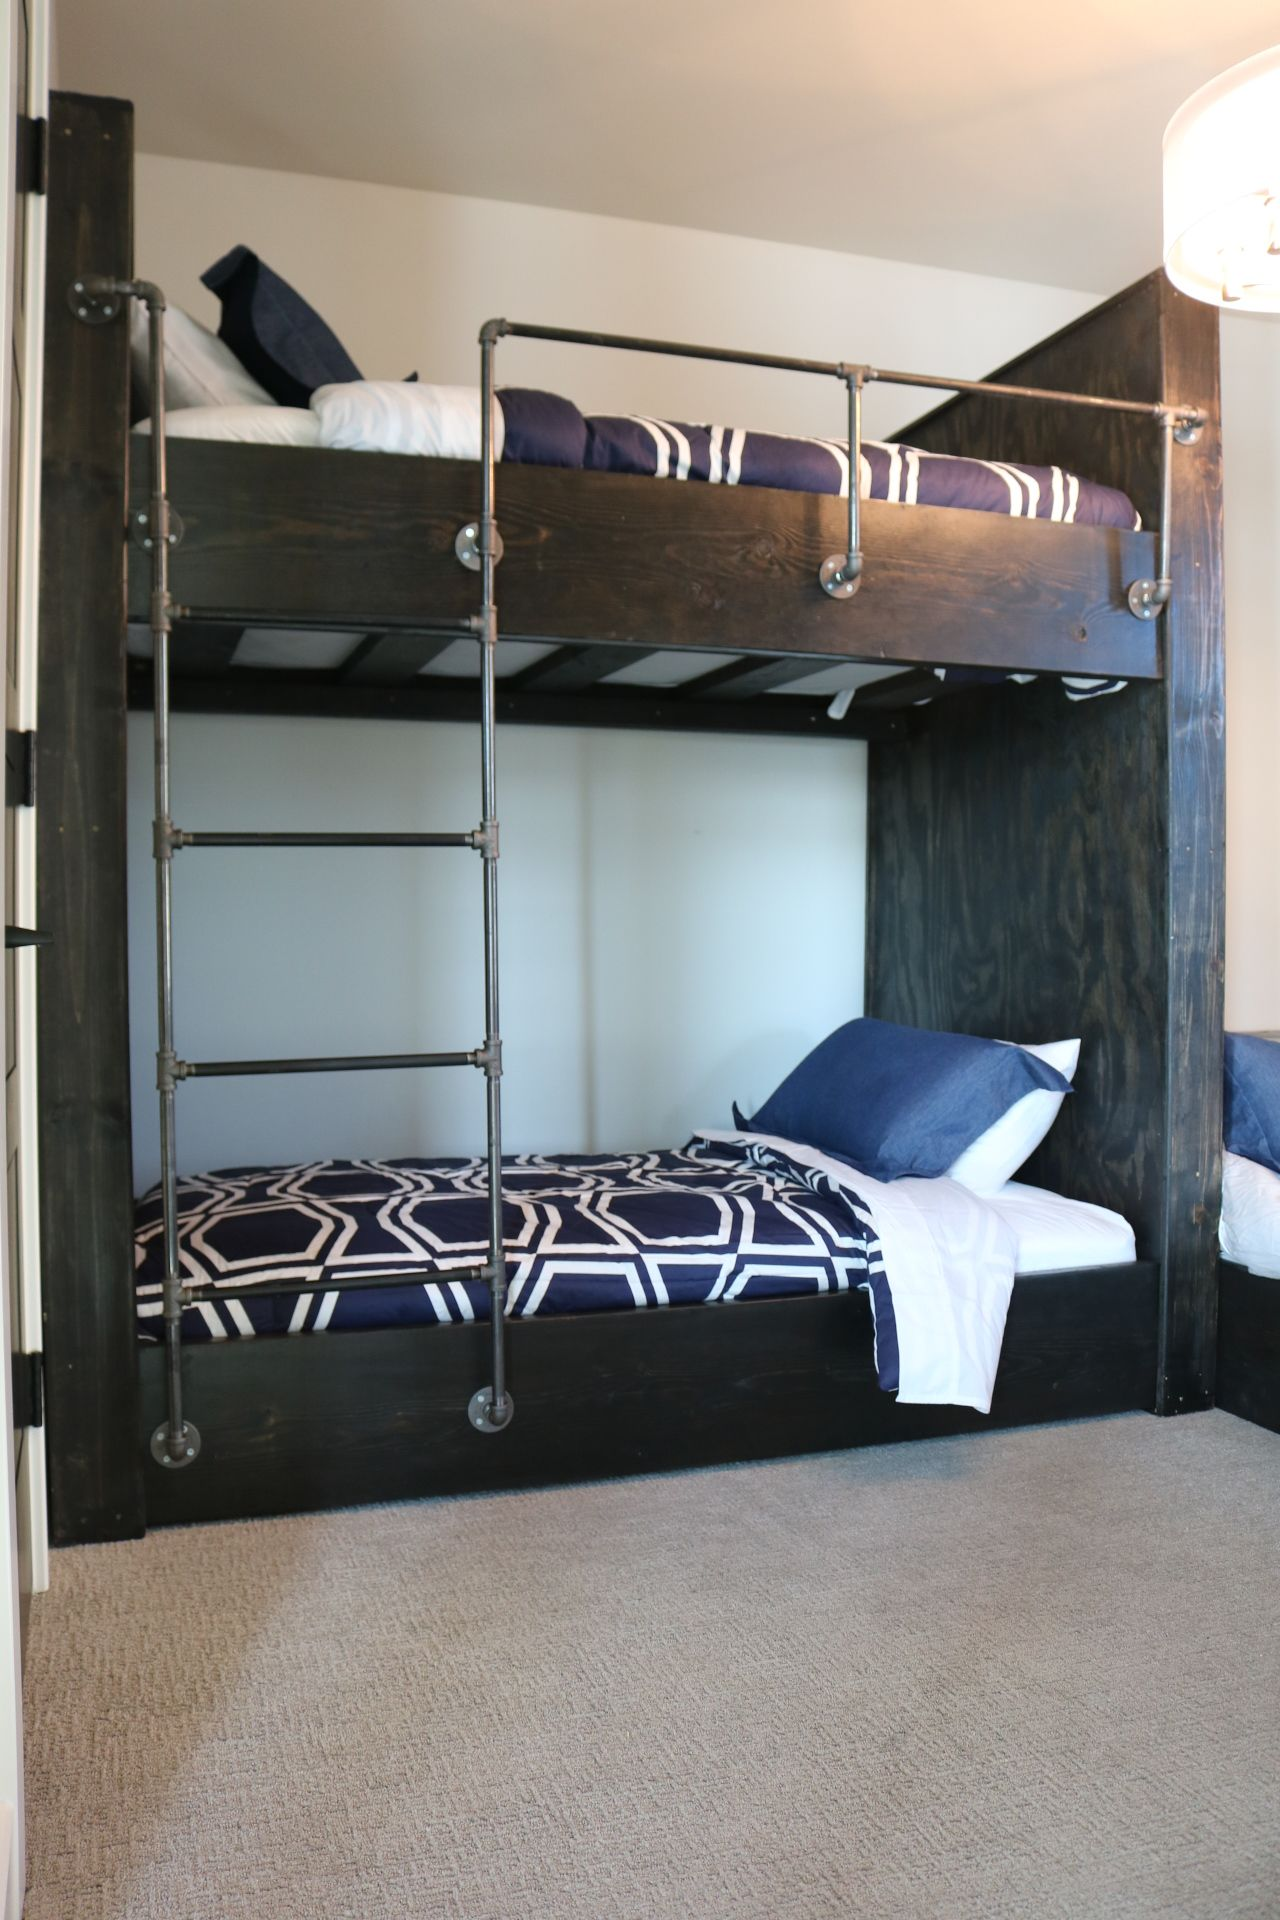 Custom Twin Bunk Bed From Parkcitybunkbedscom Nationwide Delivery